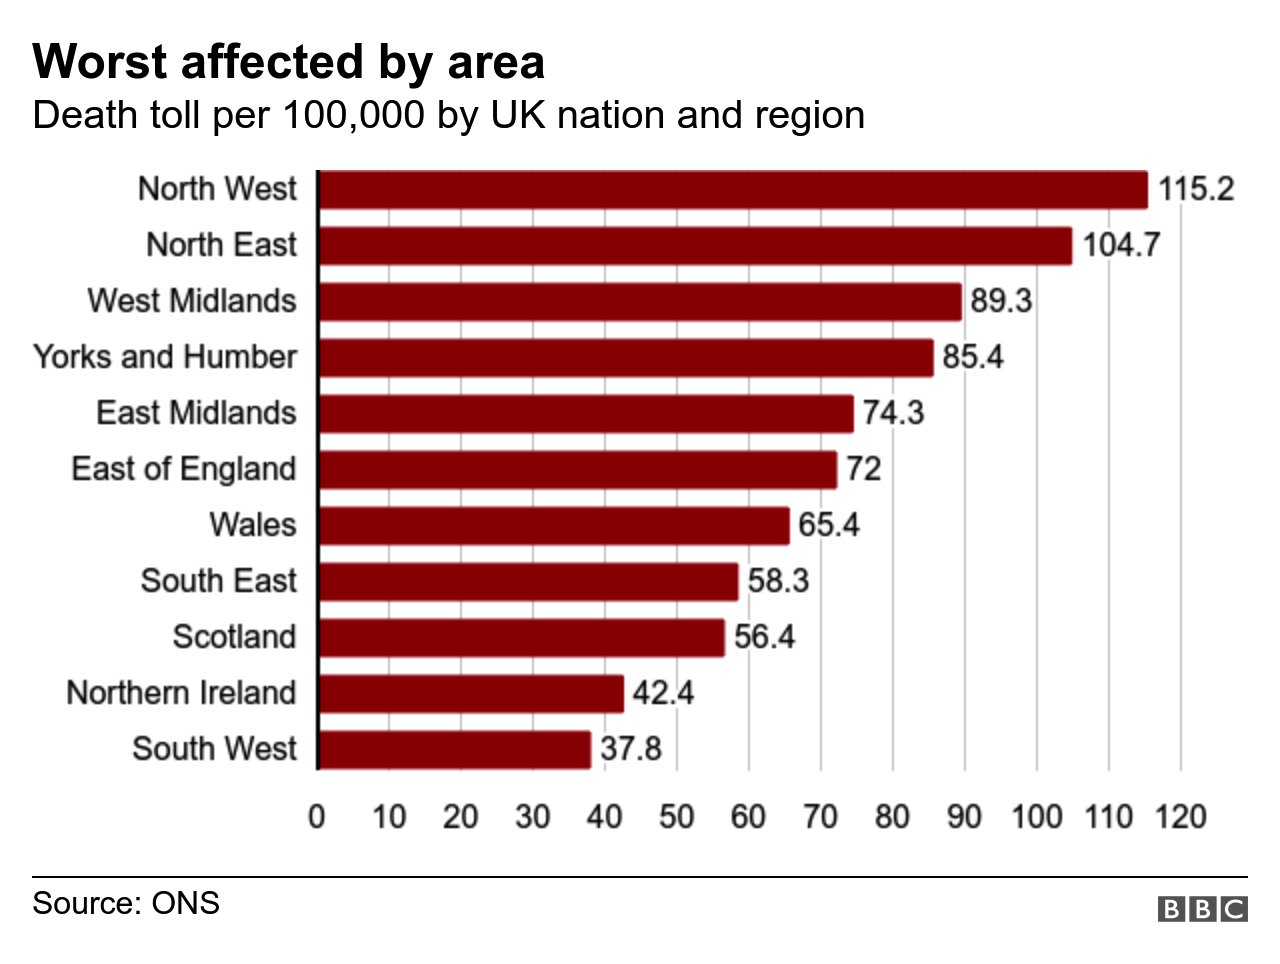 Worst affect areas